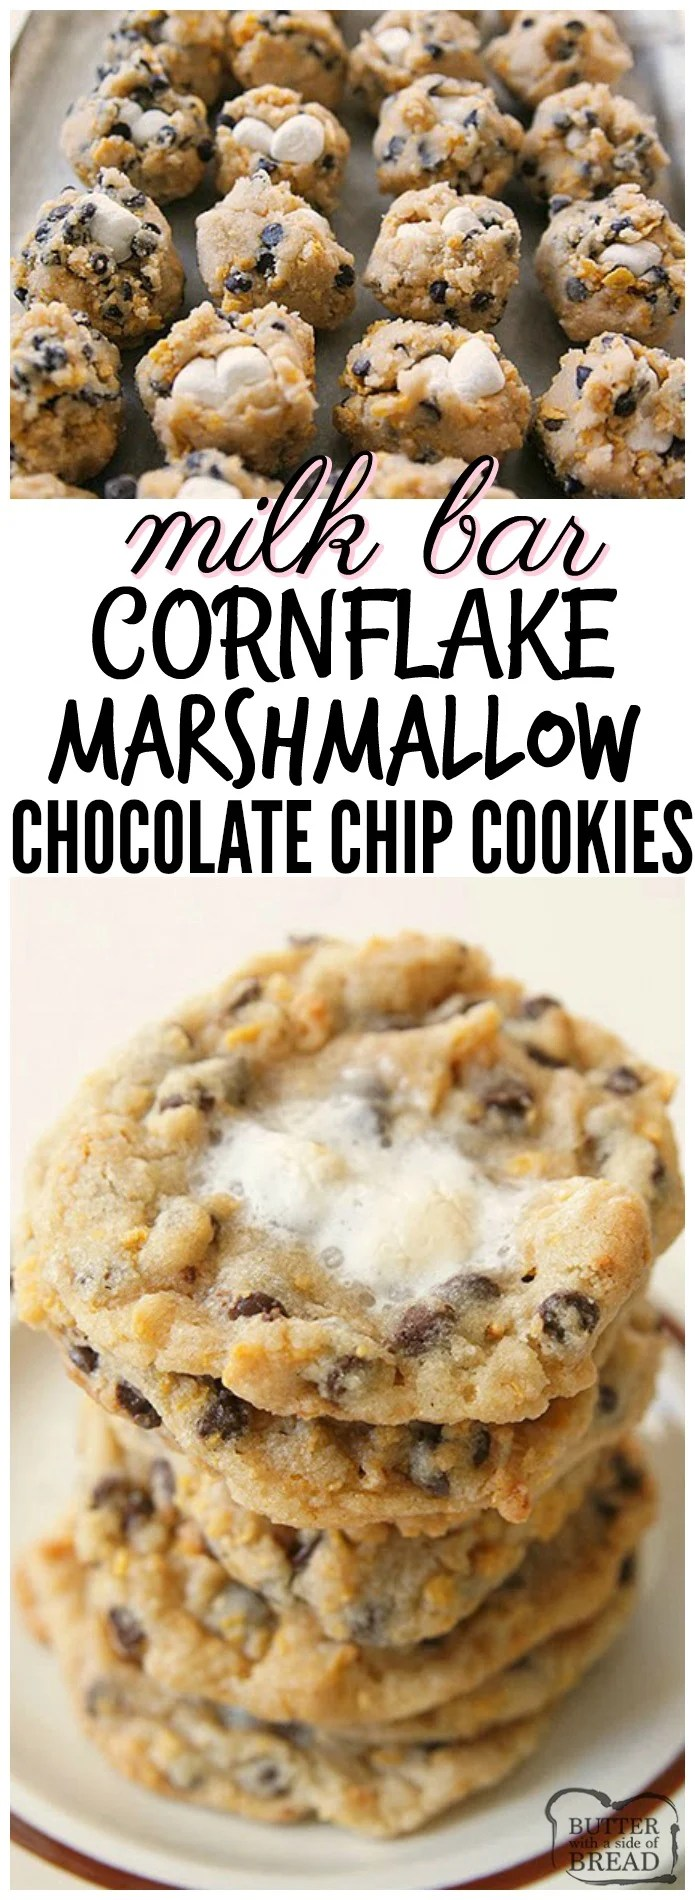 Milk Bar Cornflake Marshmallow Cookies Just Like The Ones Served In Momofuku NYC